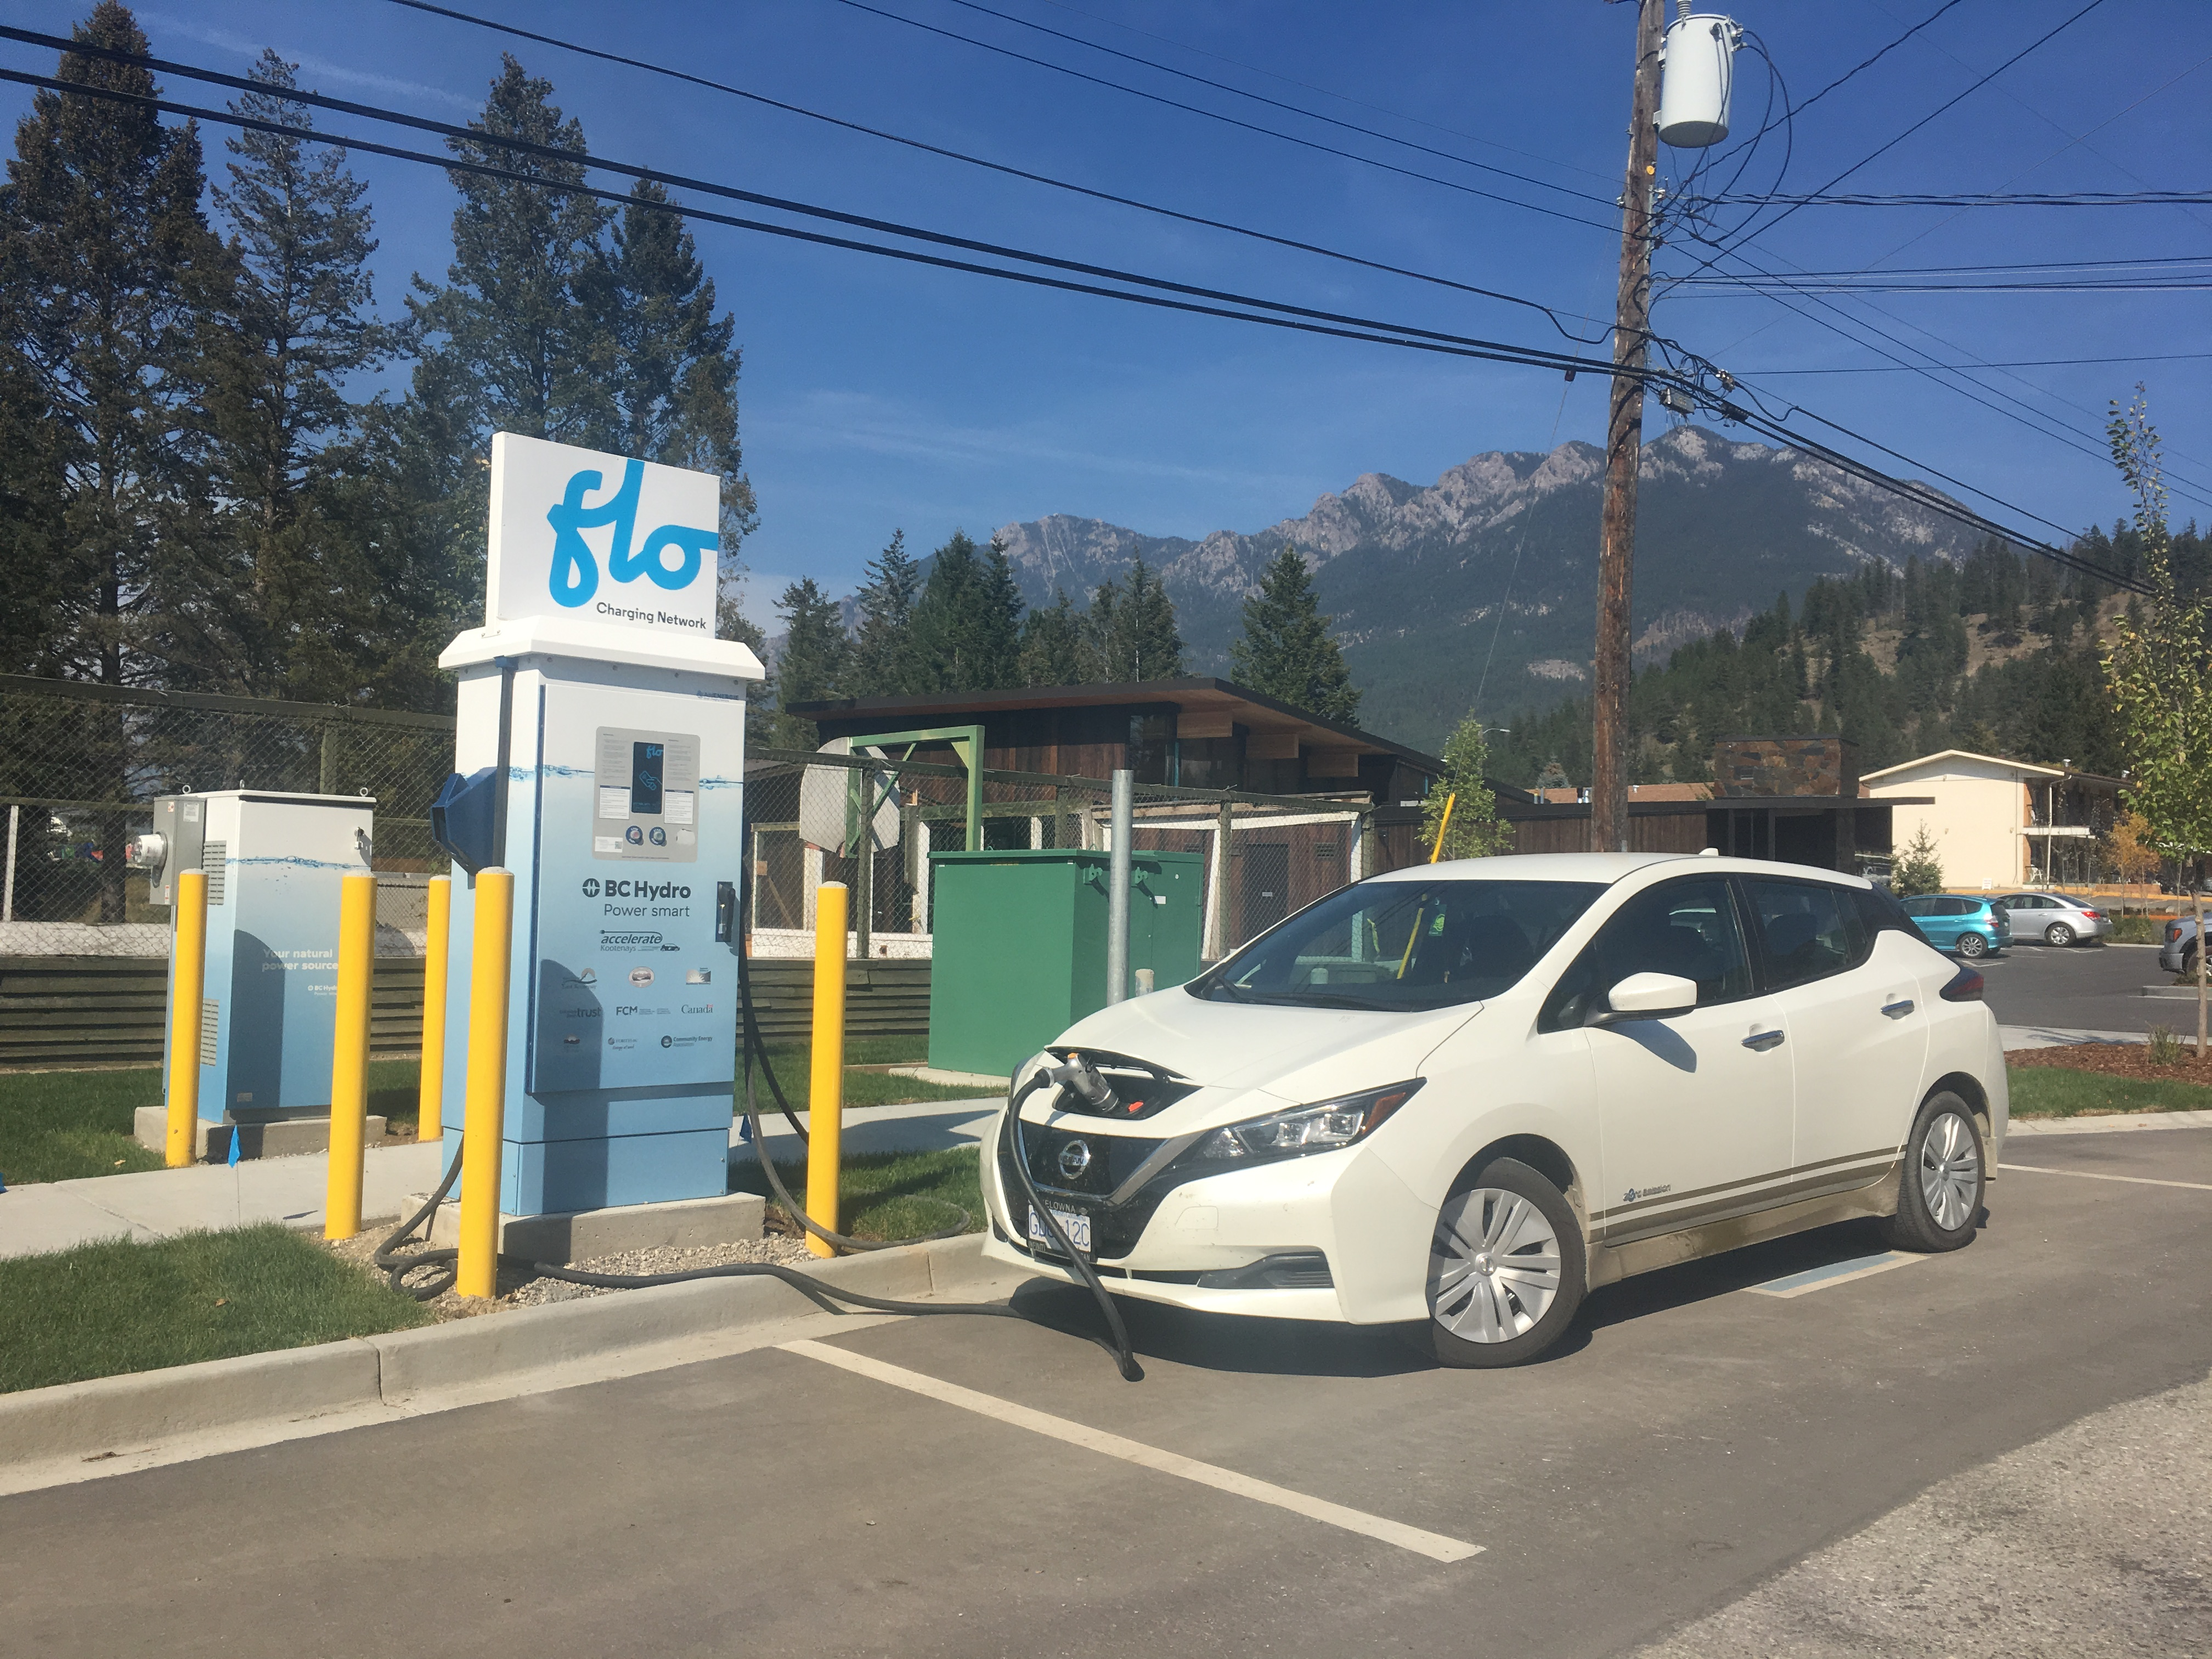 An Introduction to Electric Vehicles (EV's): A Talk by John Kellogg @ Radium Hot Springs Public Library